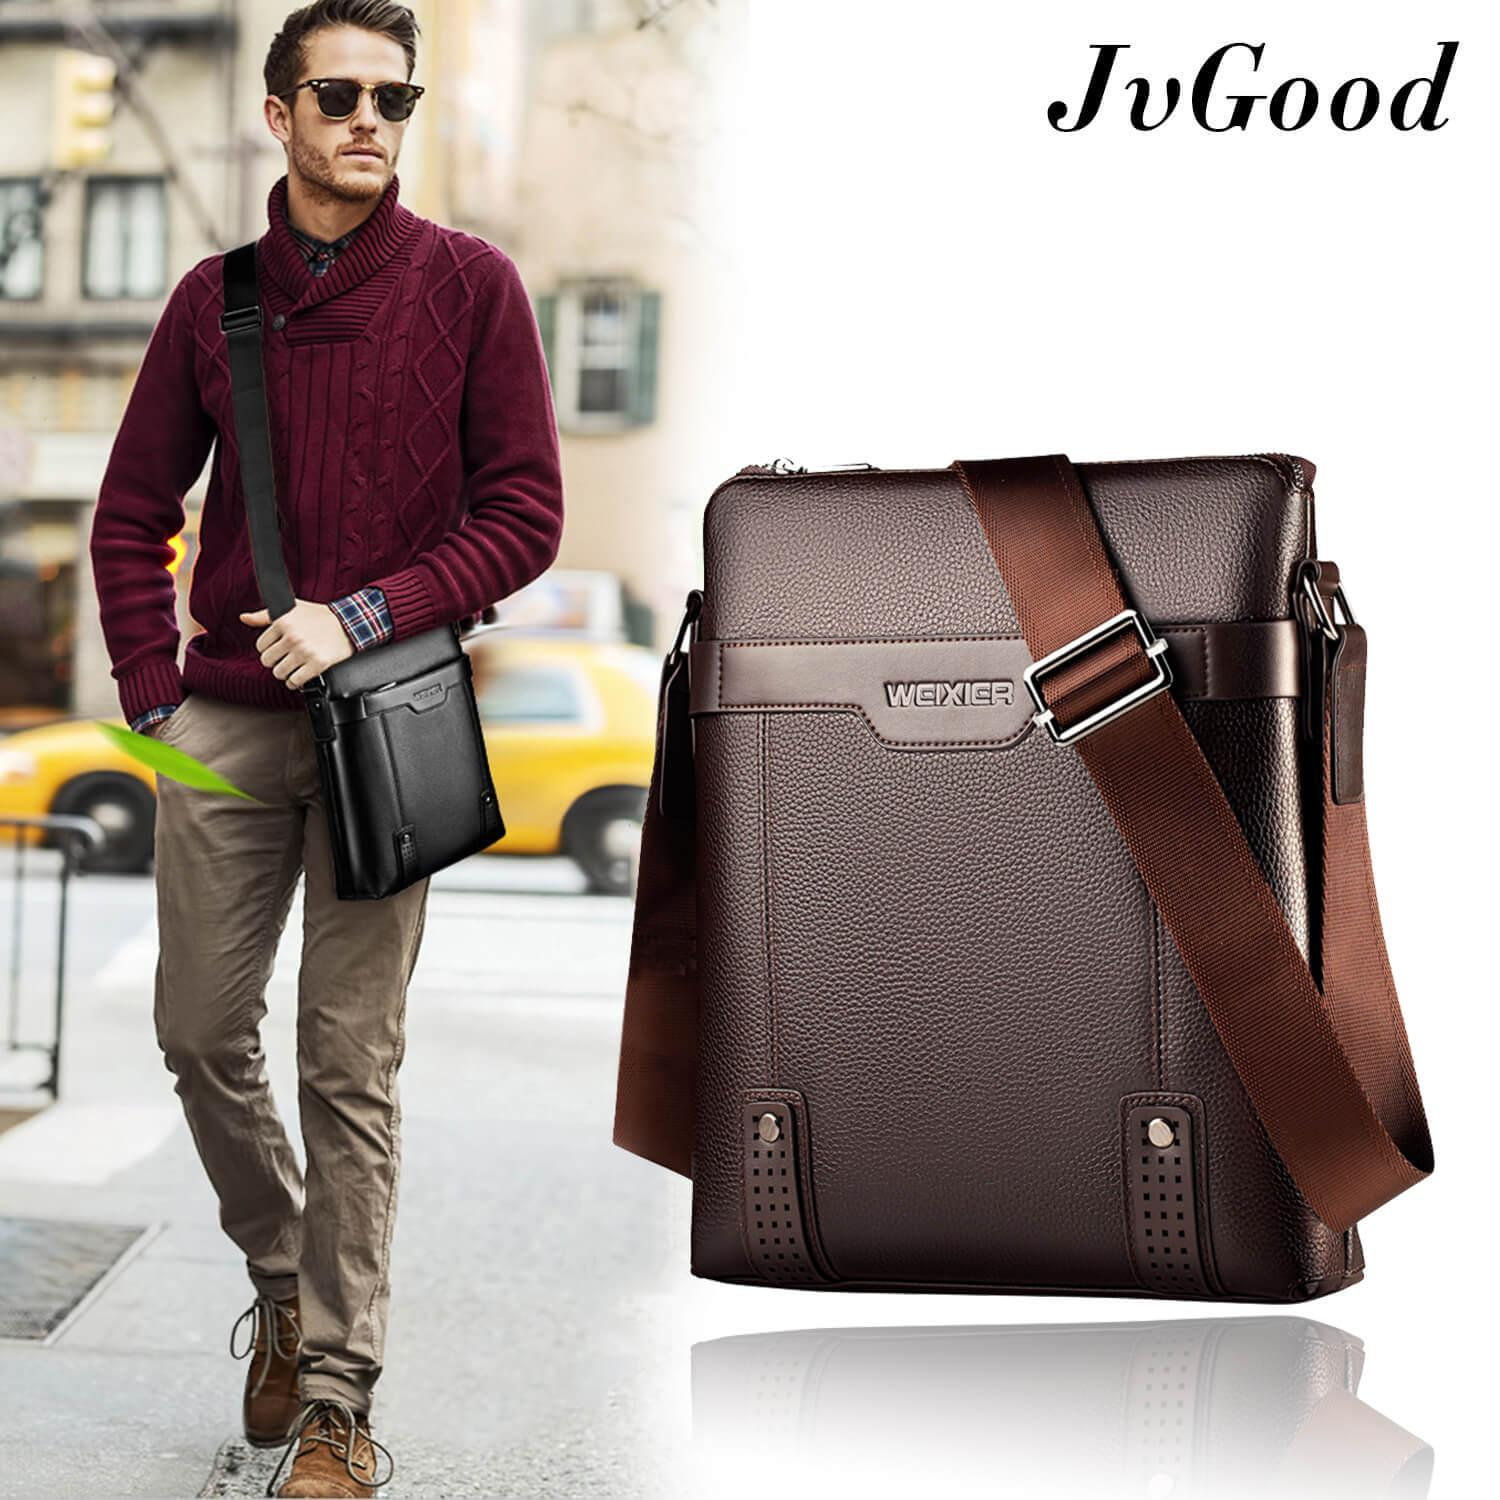 JvGood Messenger Bag PU Leather Men Bag Sling Shoulder Crossbody Bag Casual  Business Men Fashion abec459adc